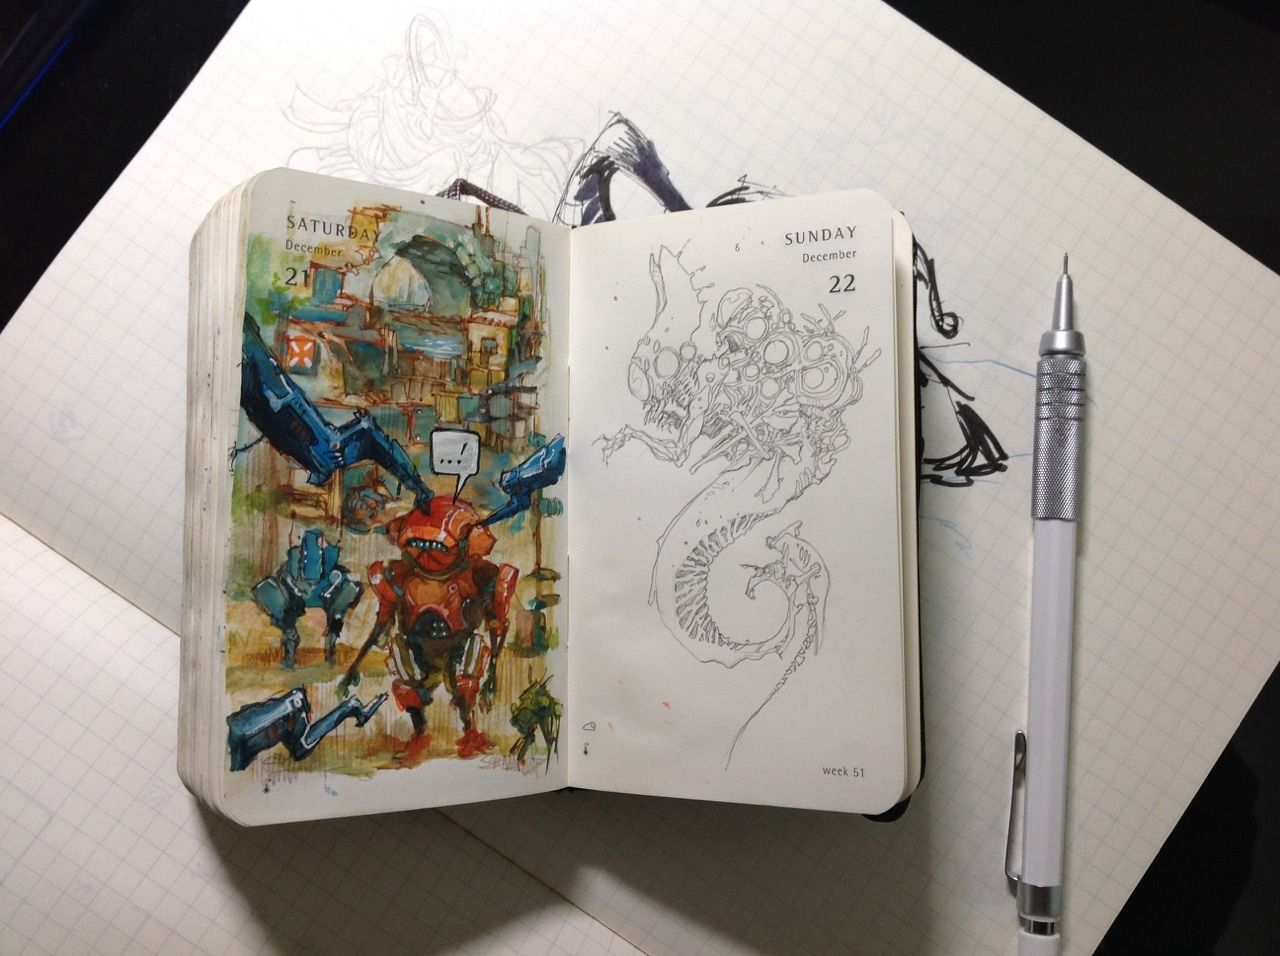 Number 356 of Kenneth Rocafort's 365 day sketch project.